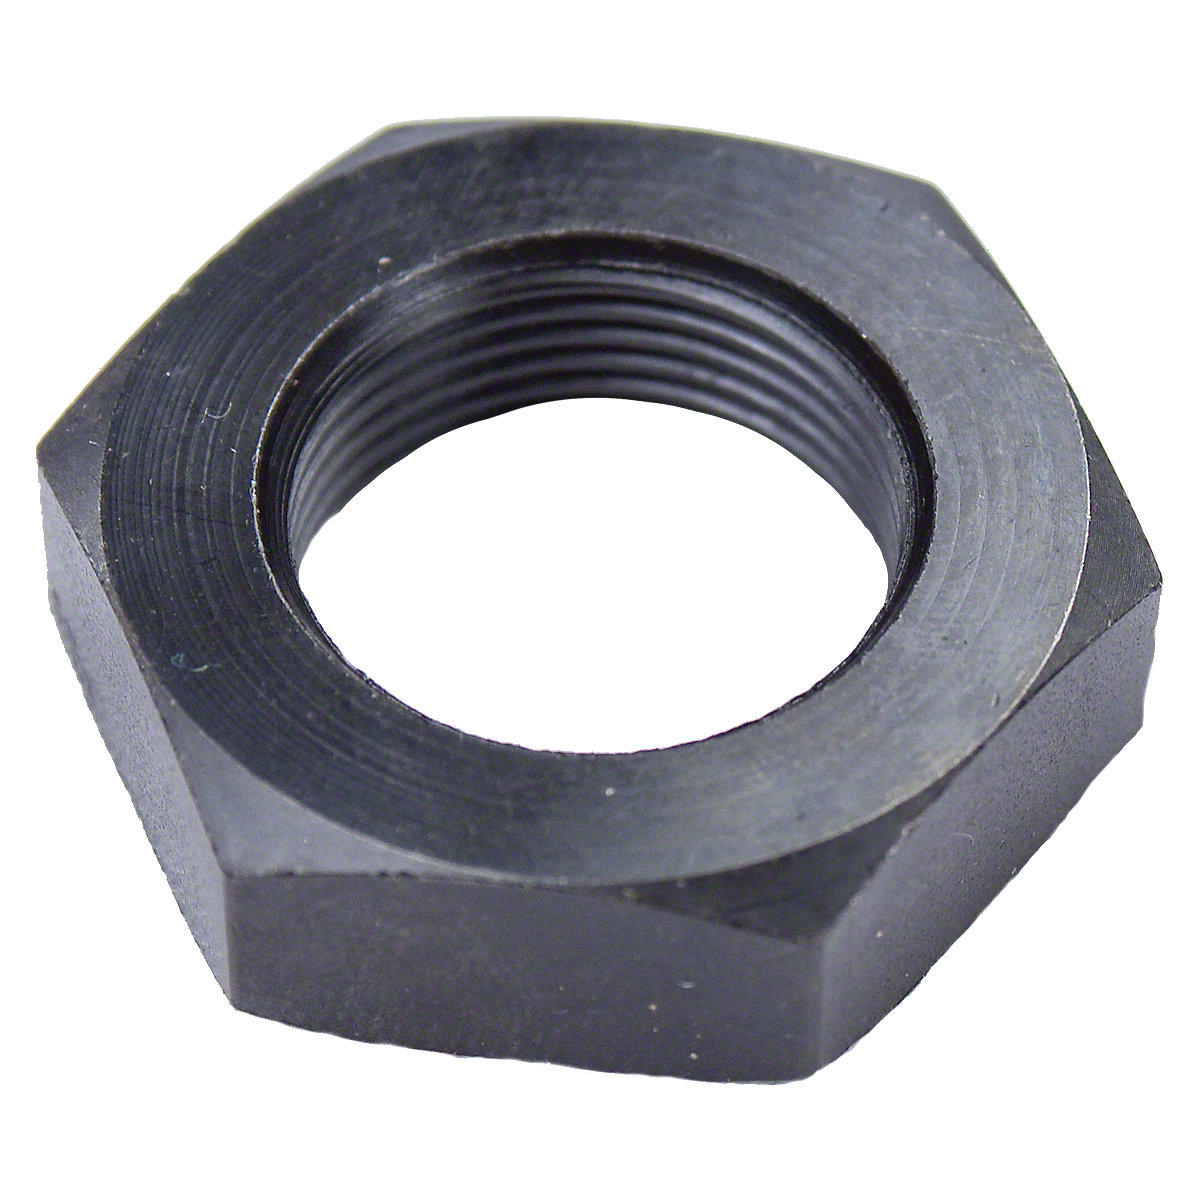 Steering Wheel Nut 13/16-20 NEF For Allis Chalmers: 190XT, 4W220, 4W305, D10, D12, D14 (SN: 19001 & up), D15, D17, D19, D21, WF, 170, 175, 180, 185, 190, 200, 210, 220, 6060, 6070, 6080, 7000, 7010, 7020, 7030, 7040, 7045, 7050, 7060, 7080, 7580, 8010.